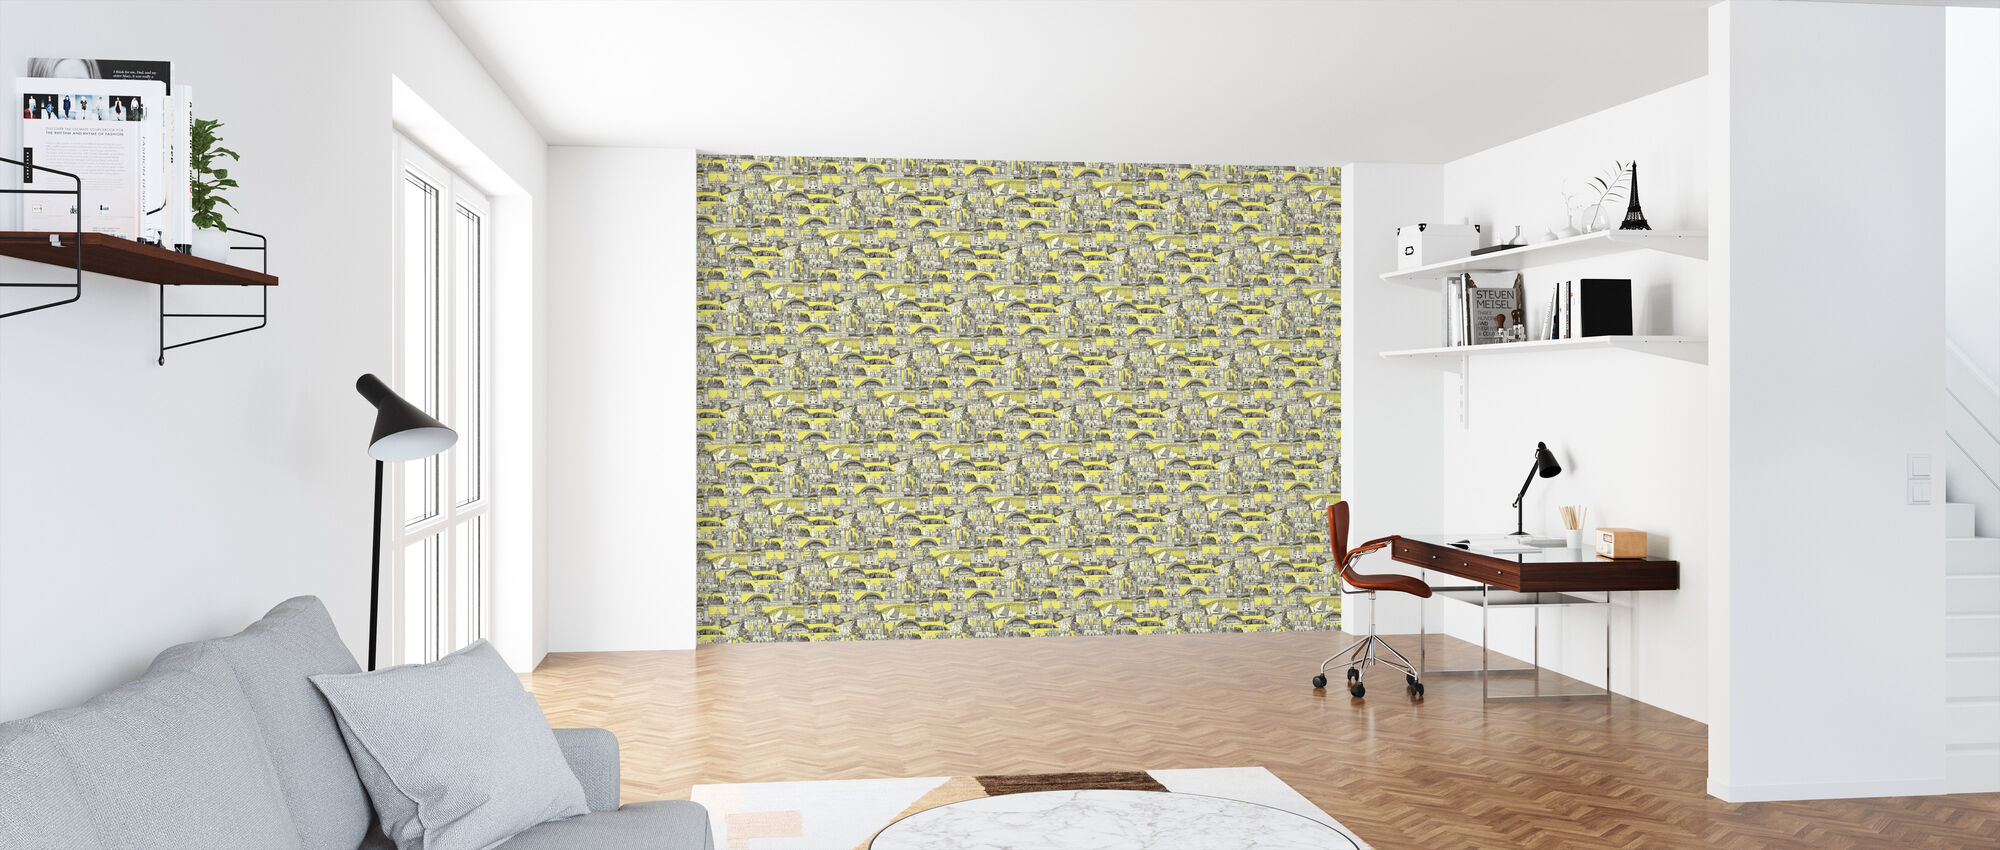 Australia Toile de Jouy - Wallpaper - Office